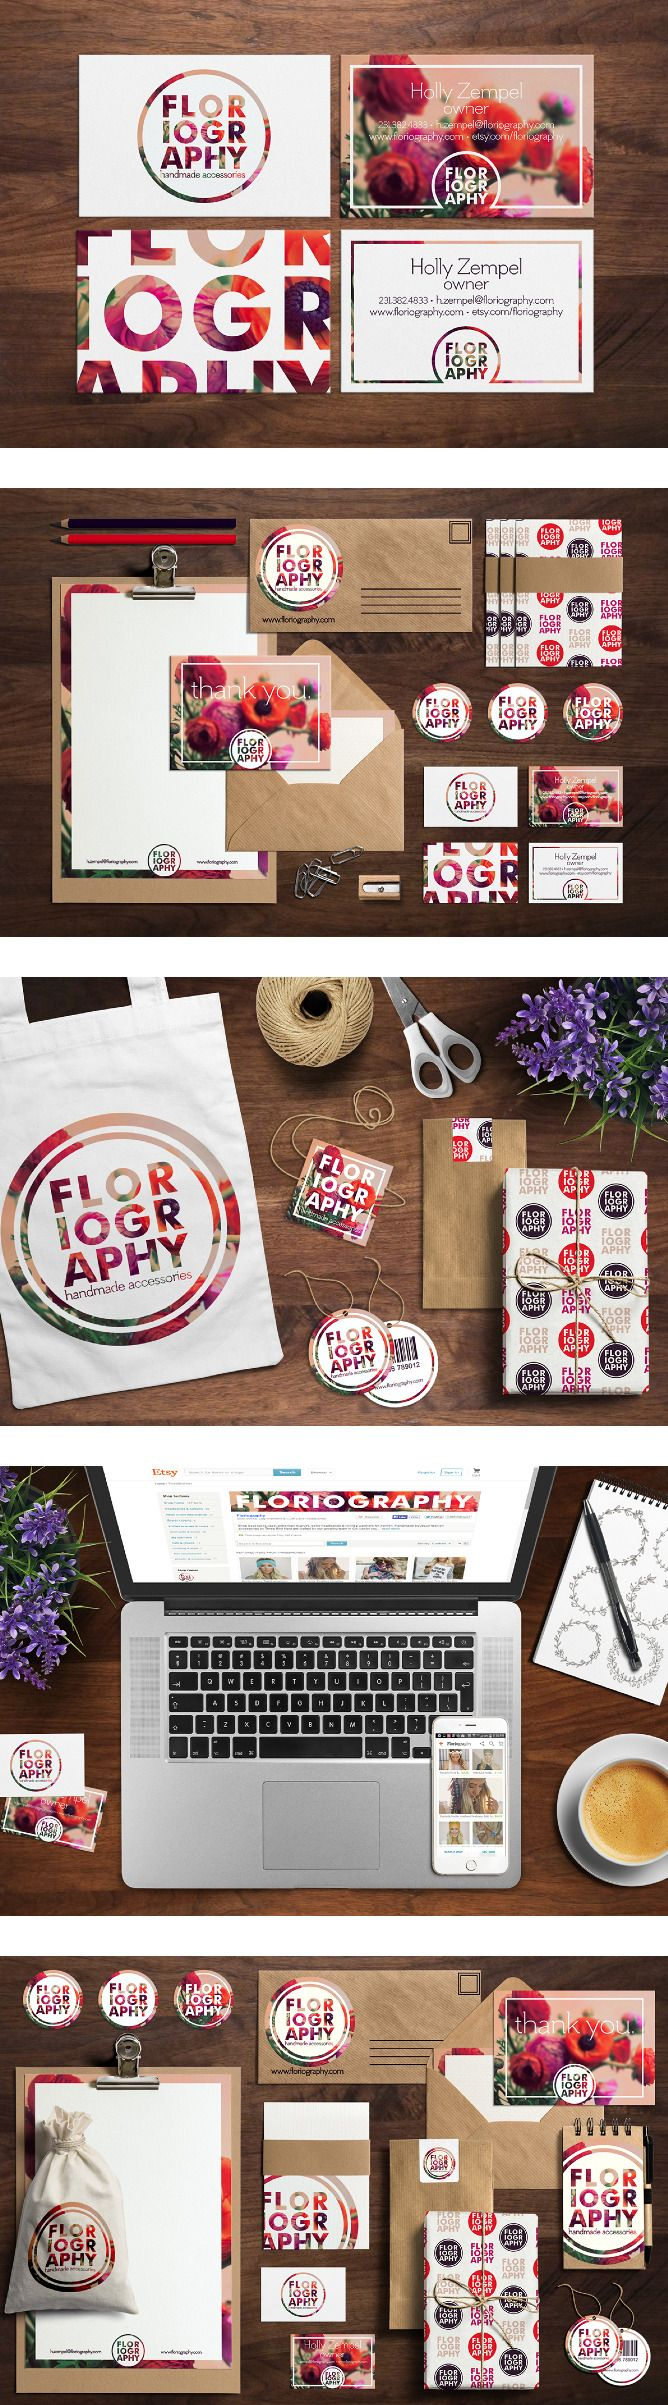 103 best Business Cards images on Pinterest | Identity, Corporate ...